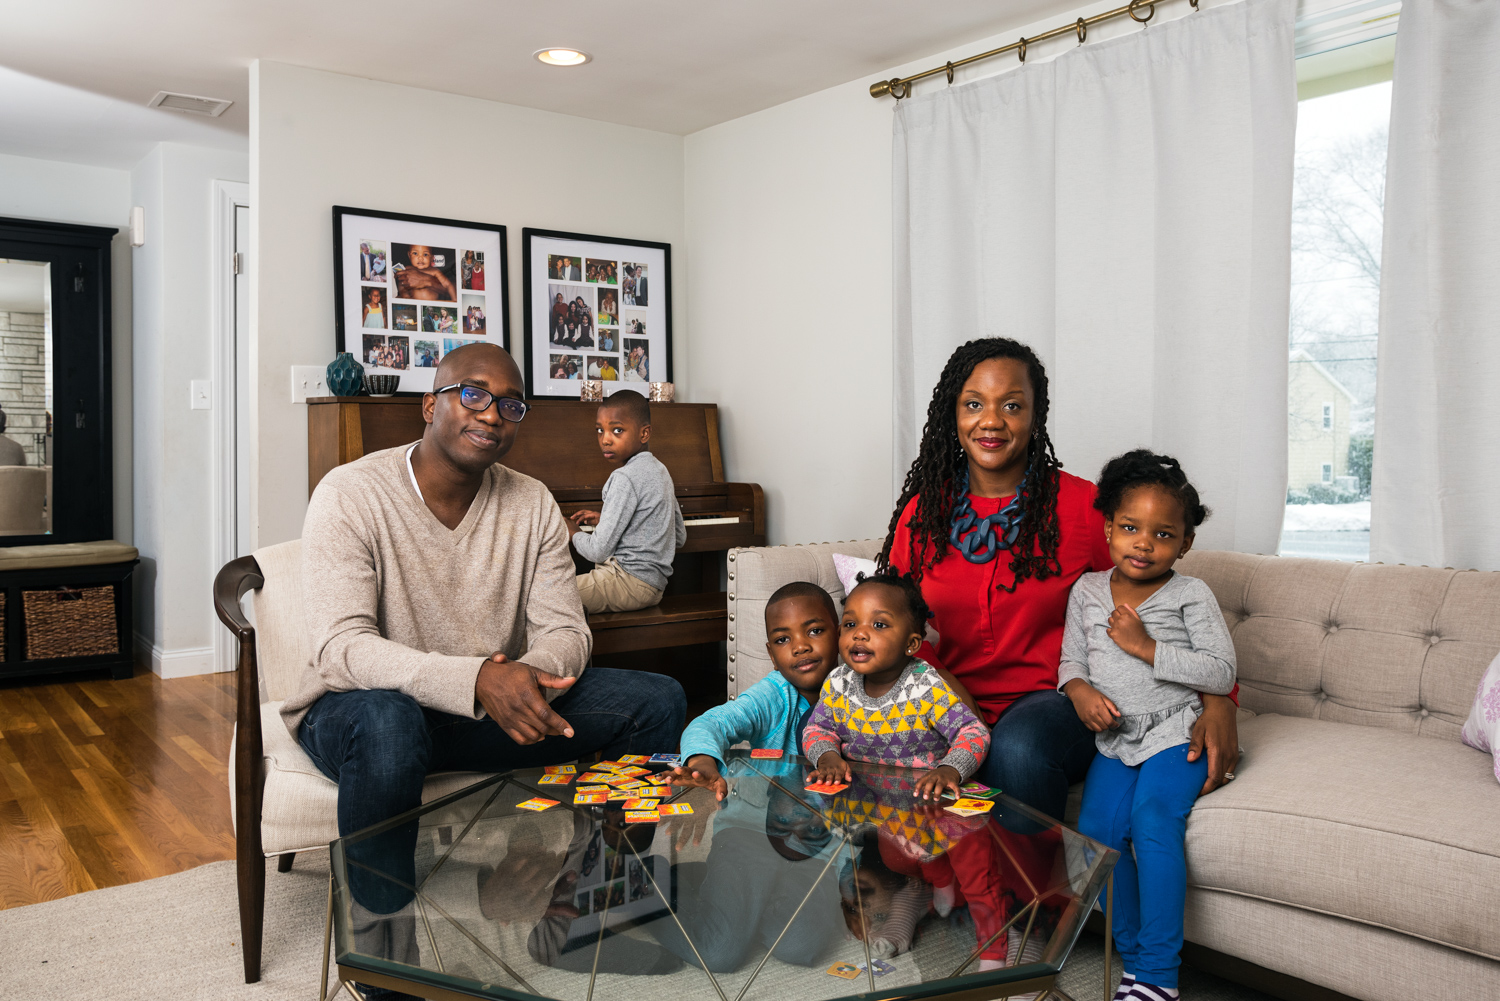 Ohene, Regine and Family - Homeowners